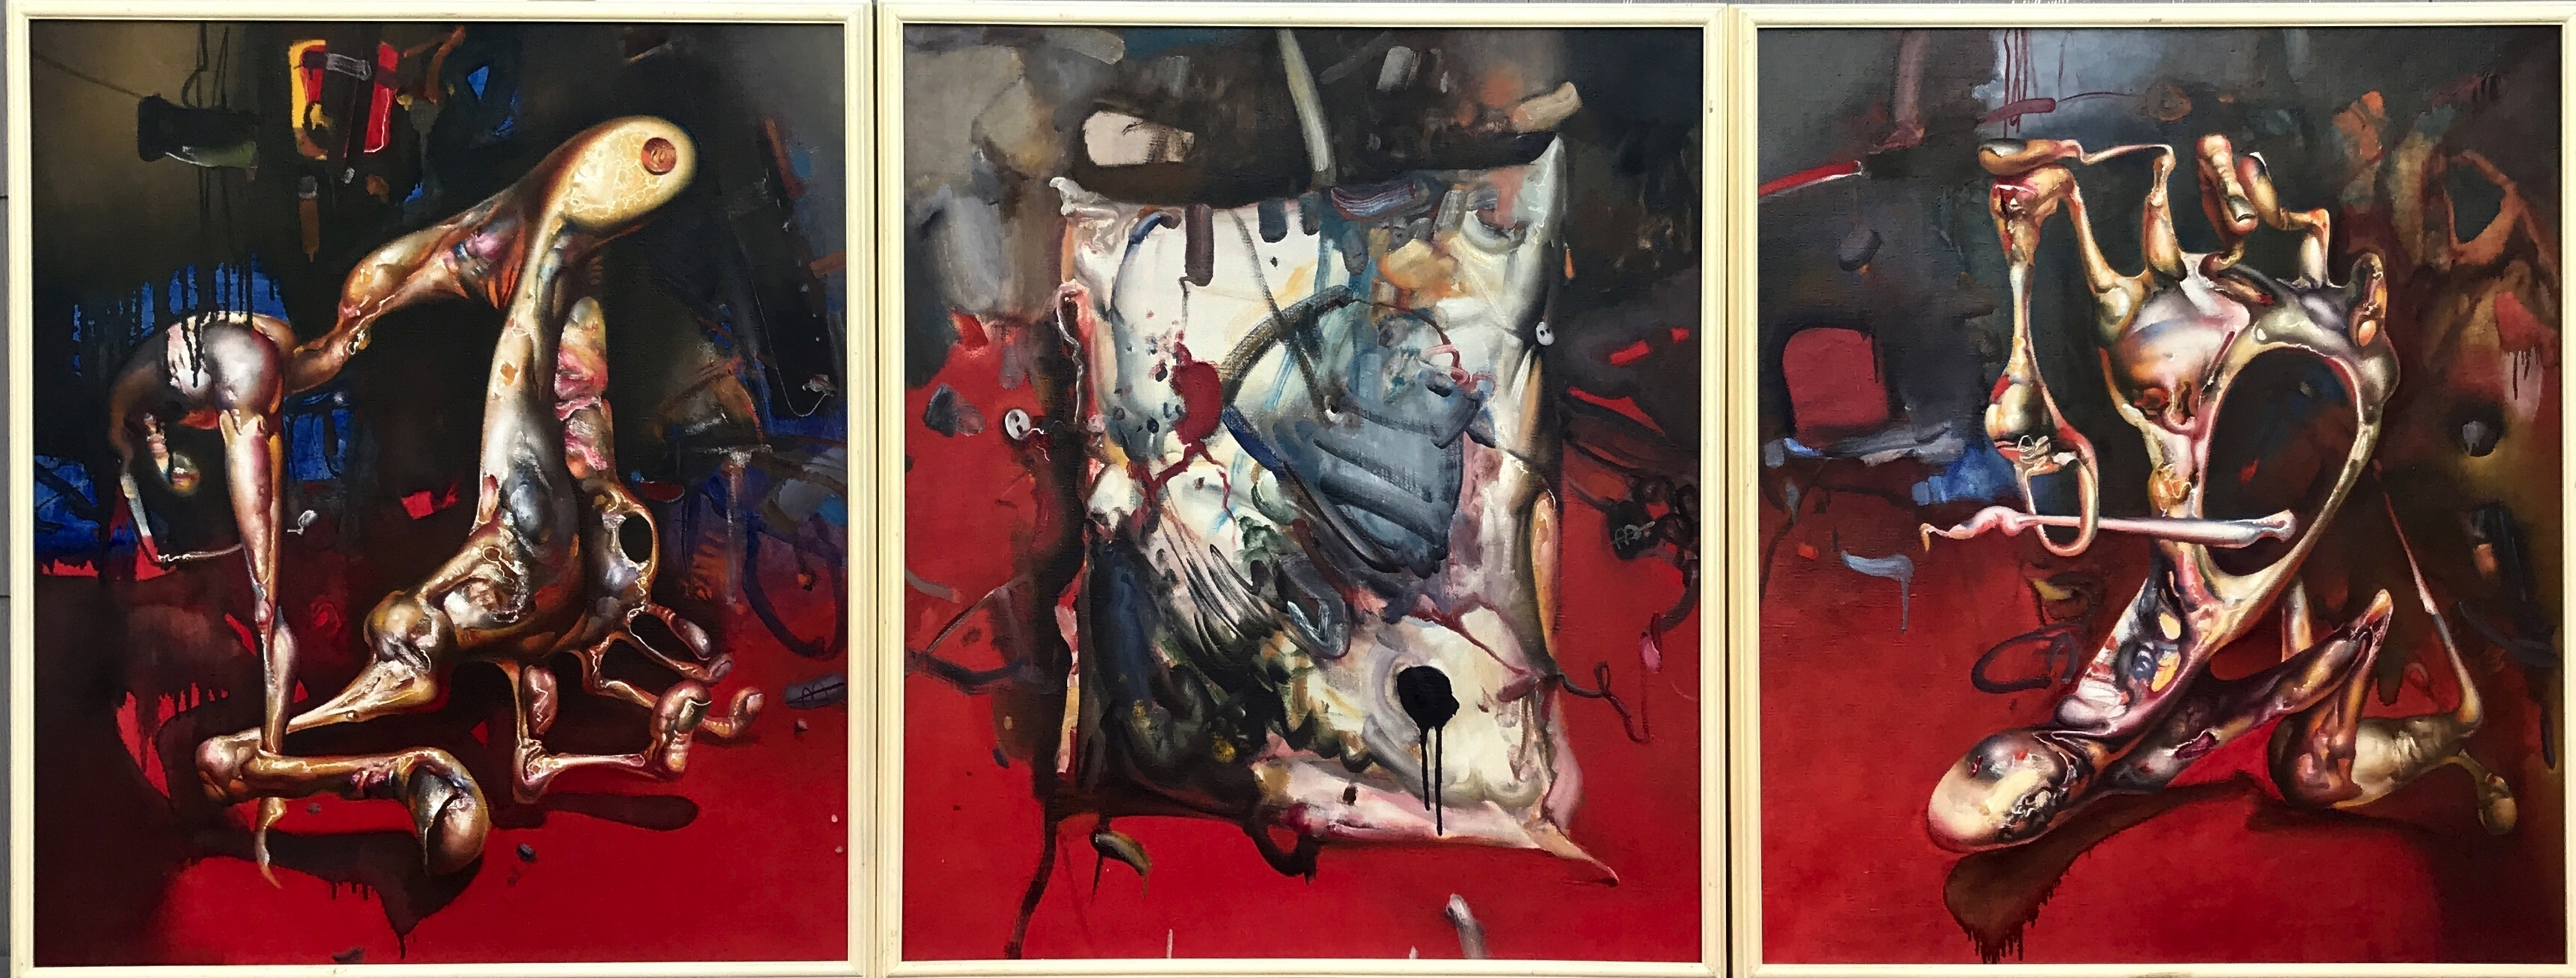 That's it for today (triptych) Artwork by Antanas Adomaitis